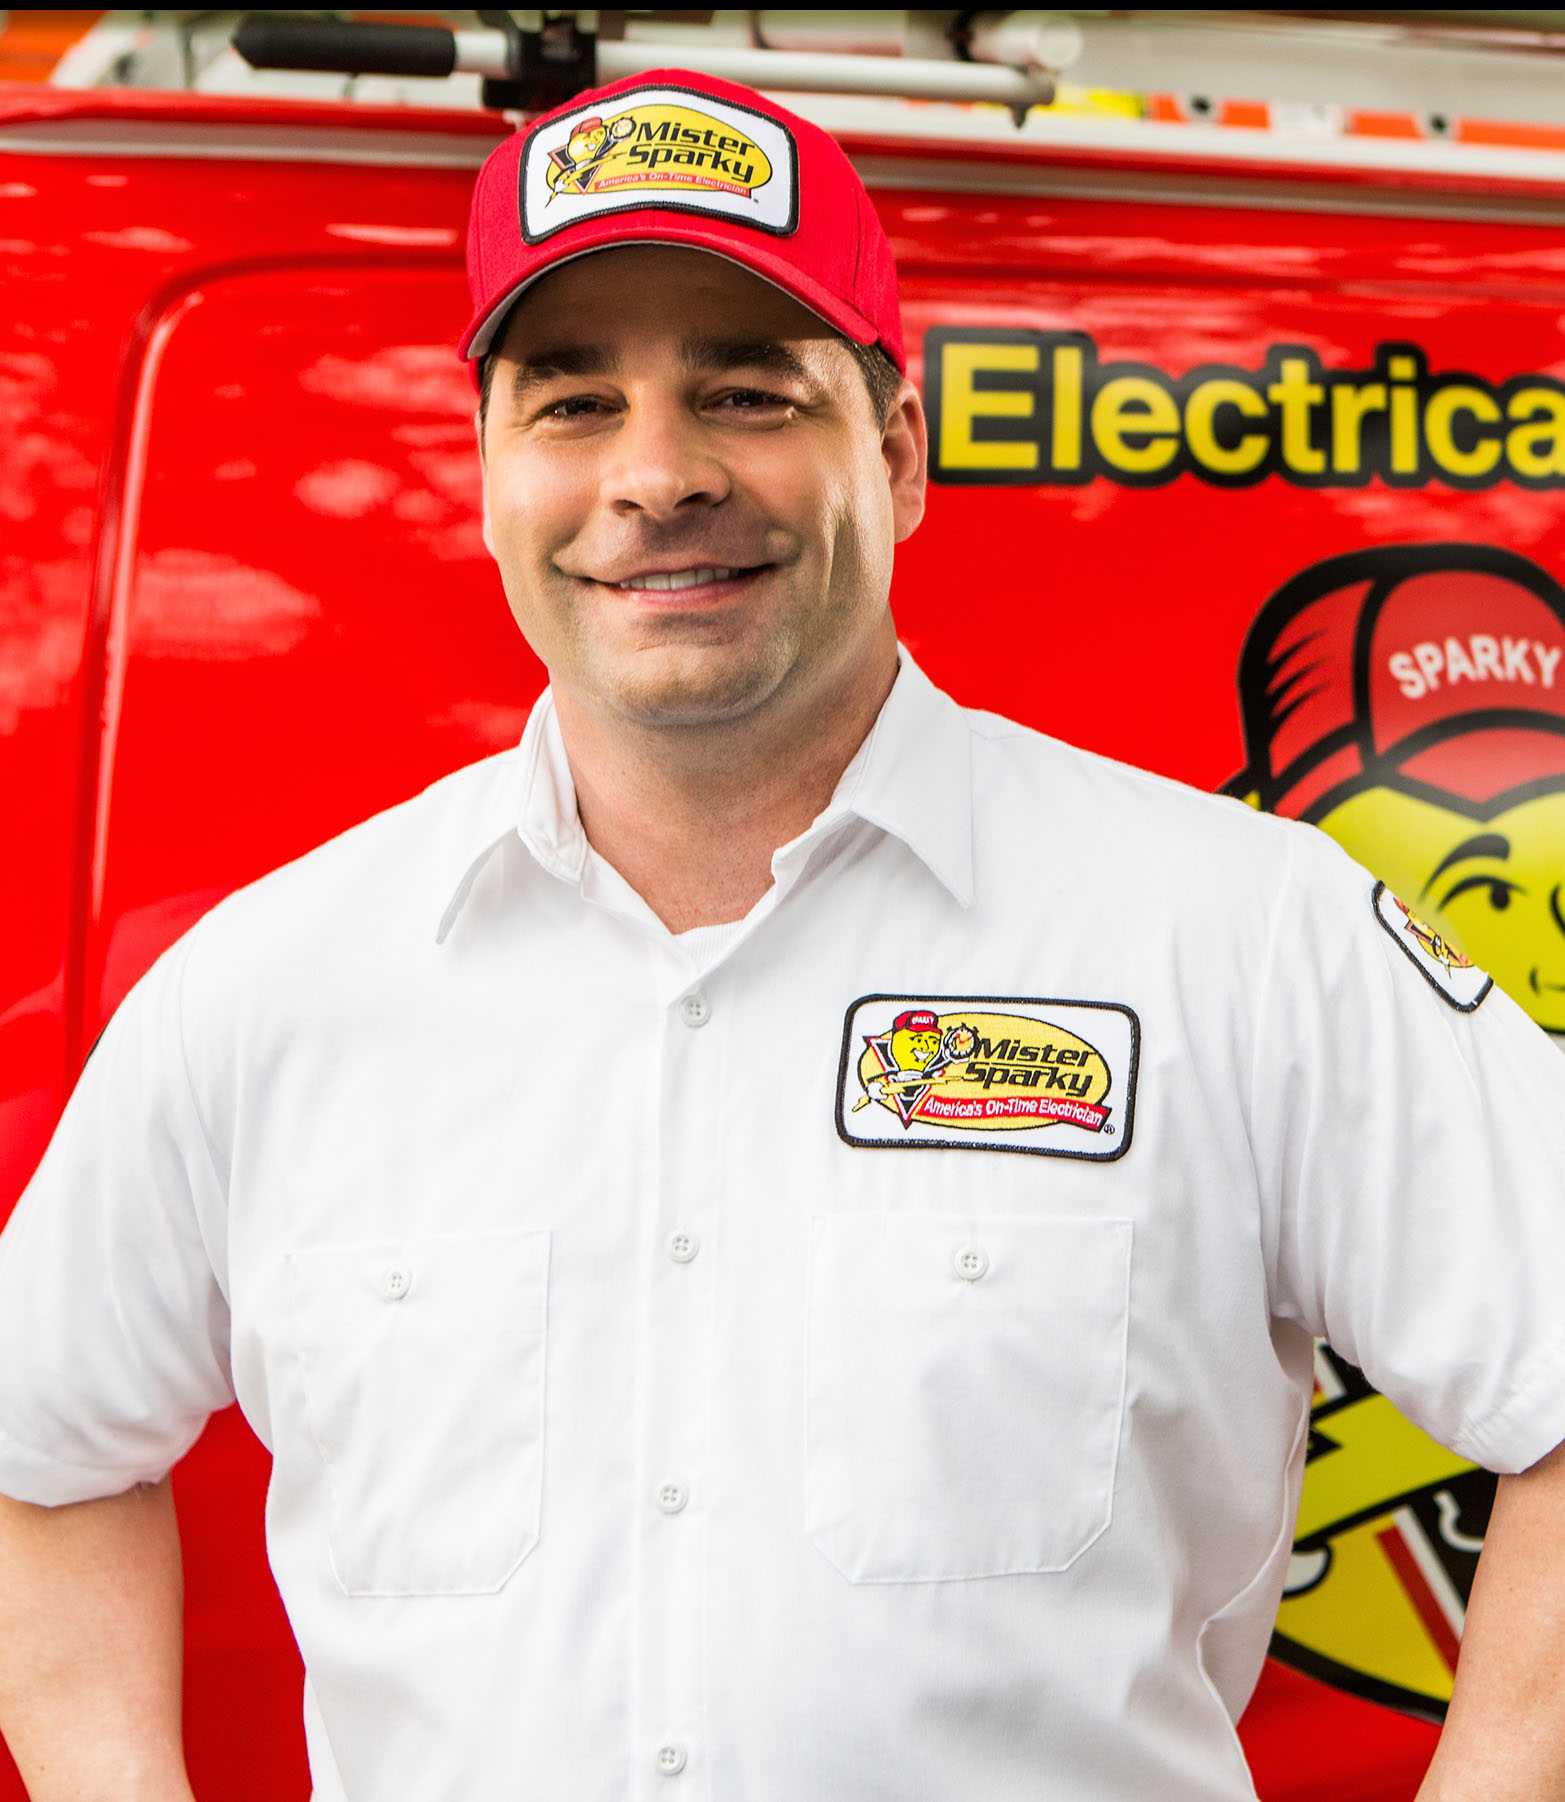 Mister Sparky Electrician NWA